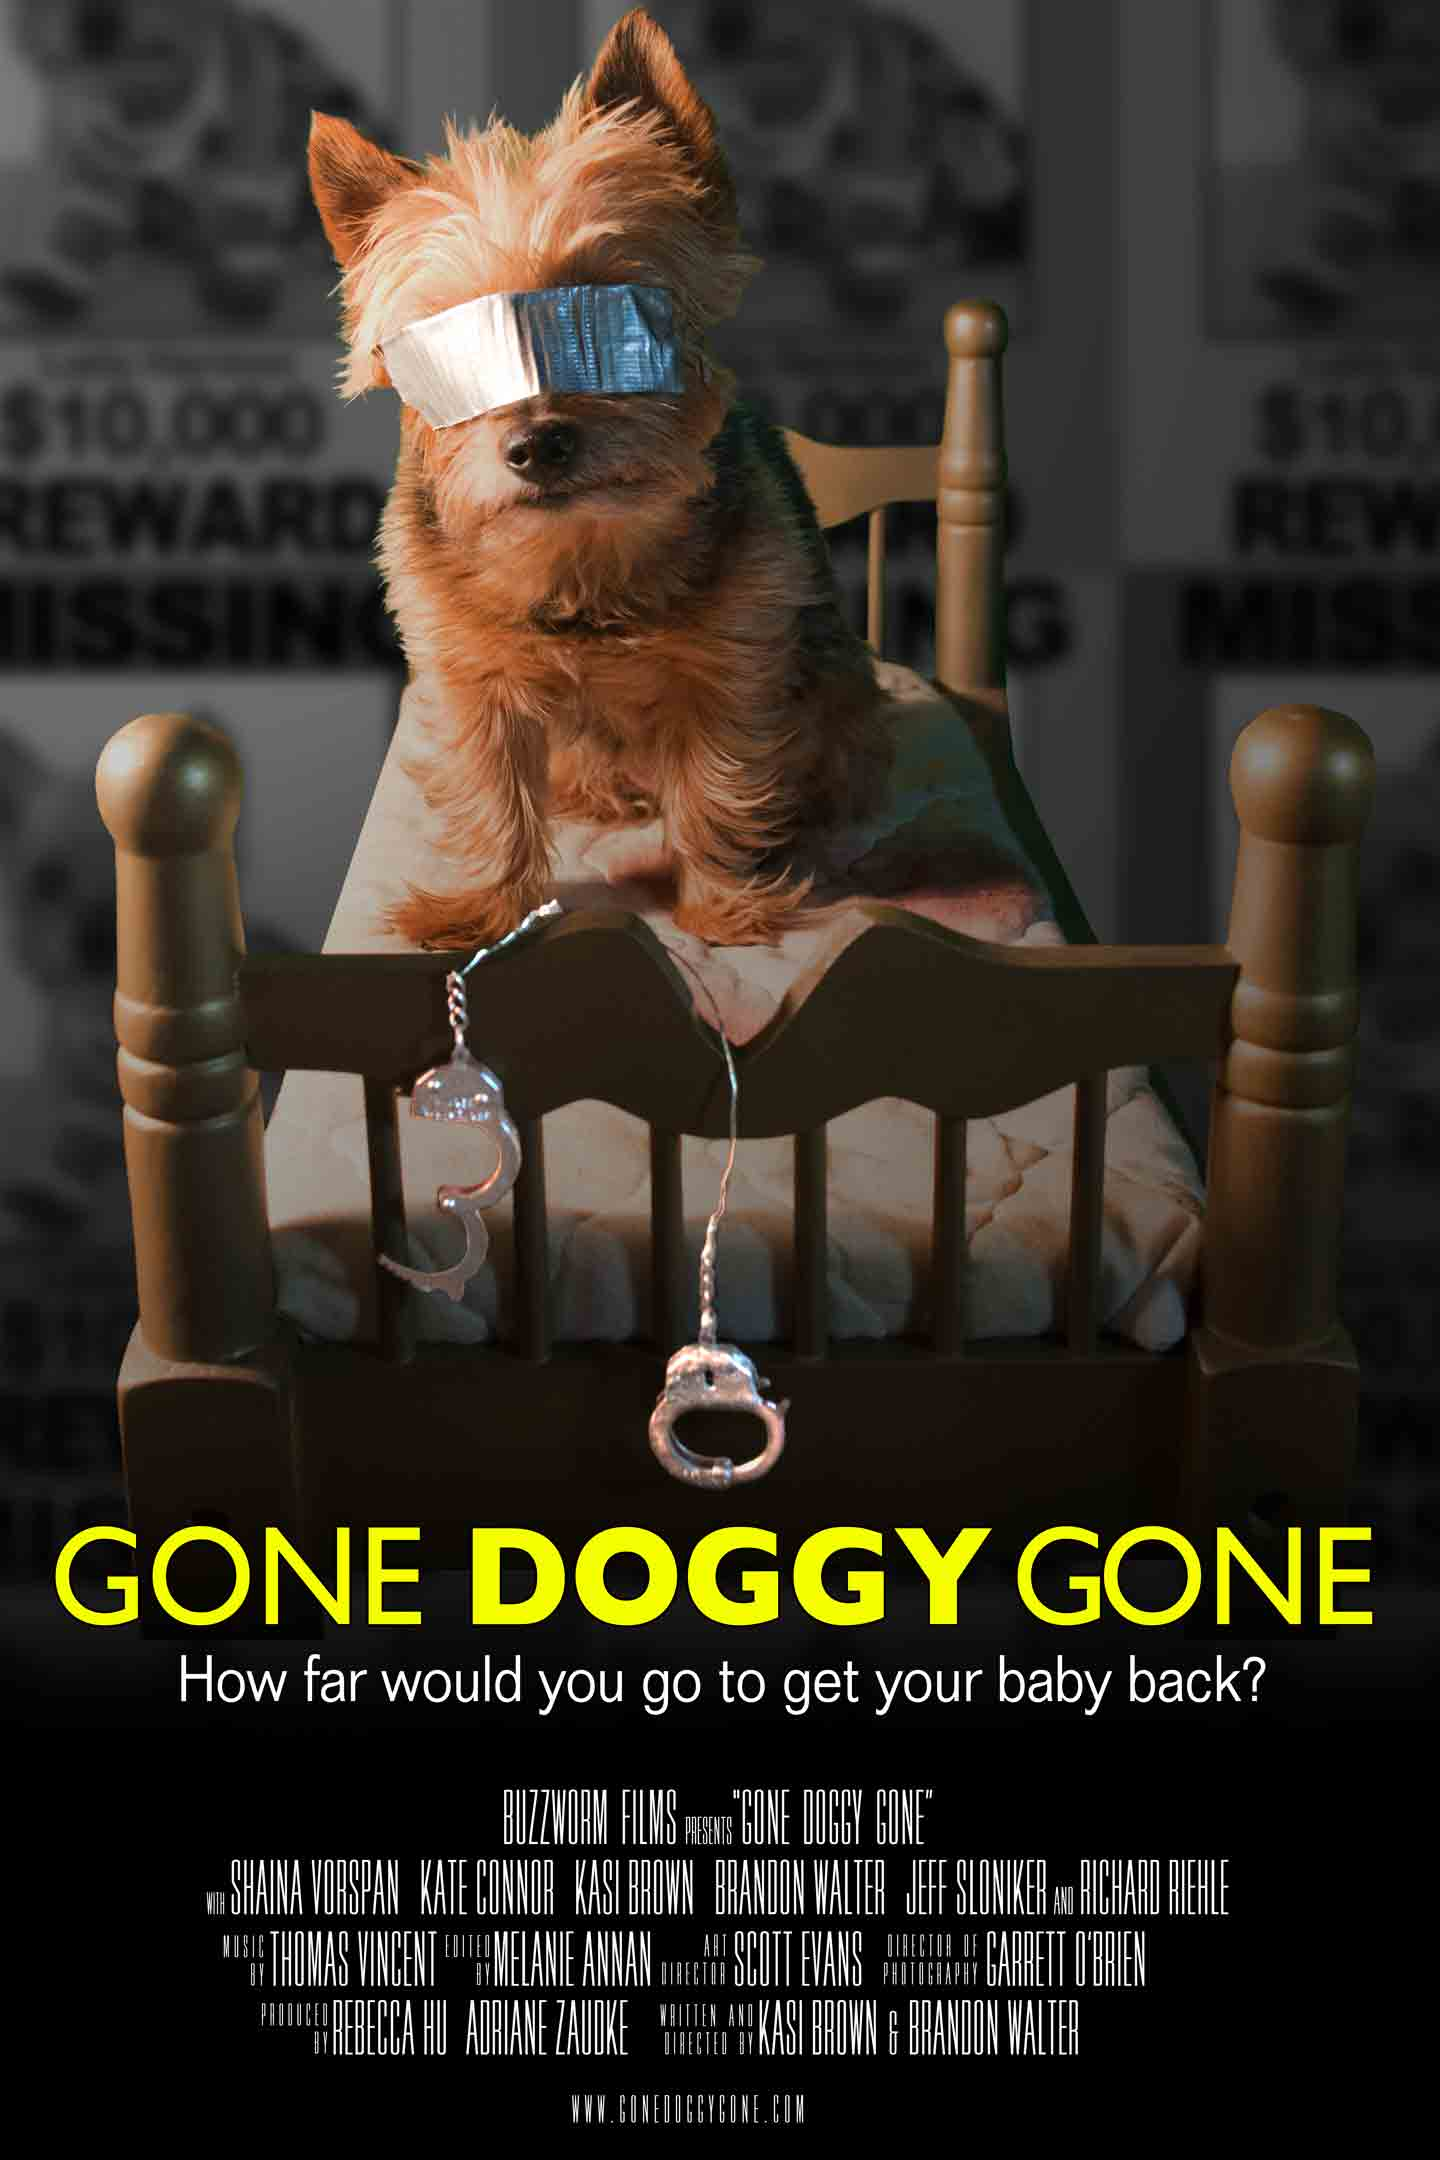 Gone Doggy Gone Movie Gone Doggy Gone Movie Review